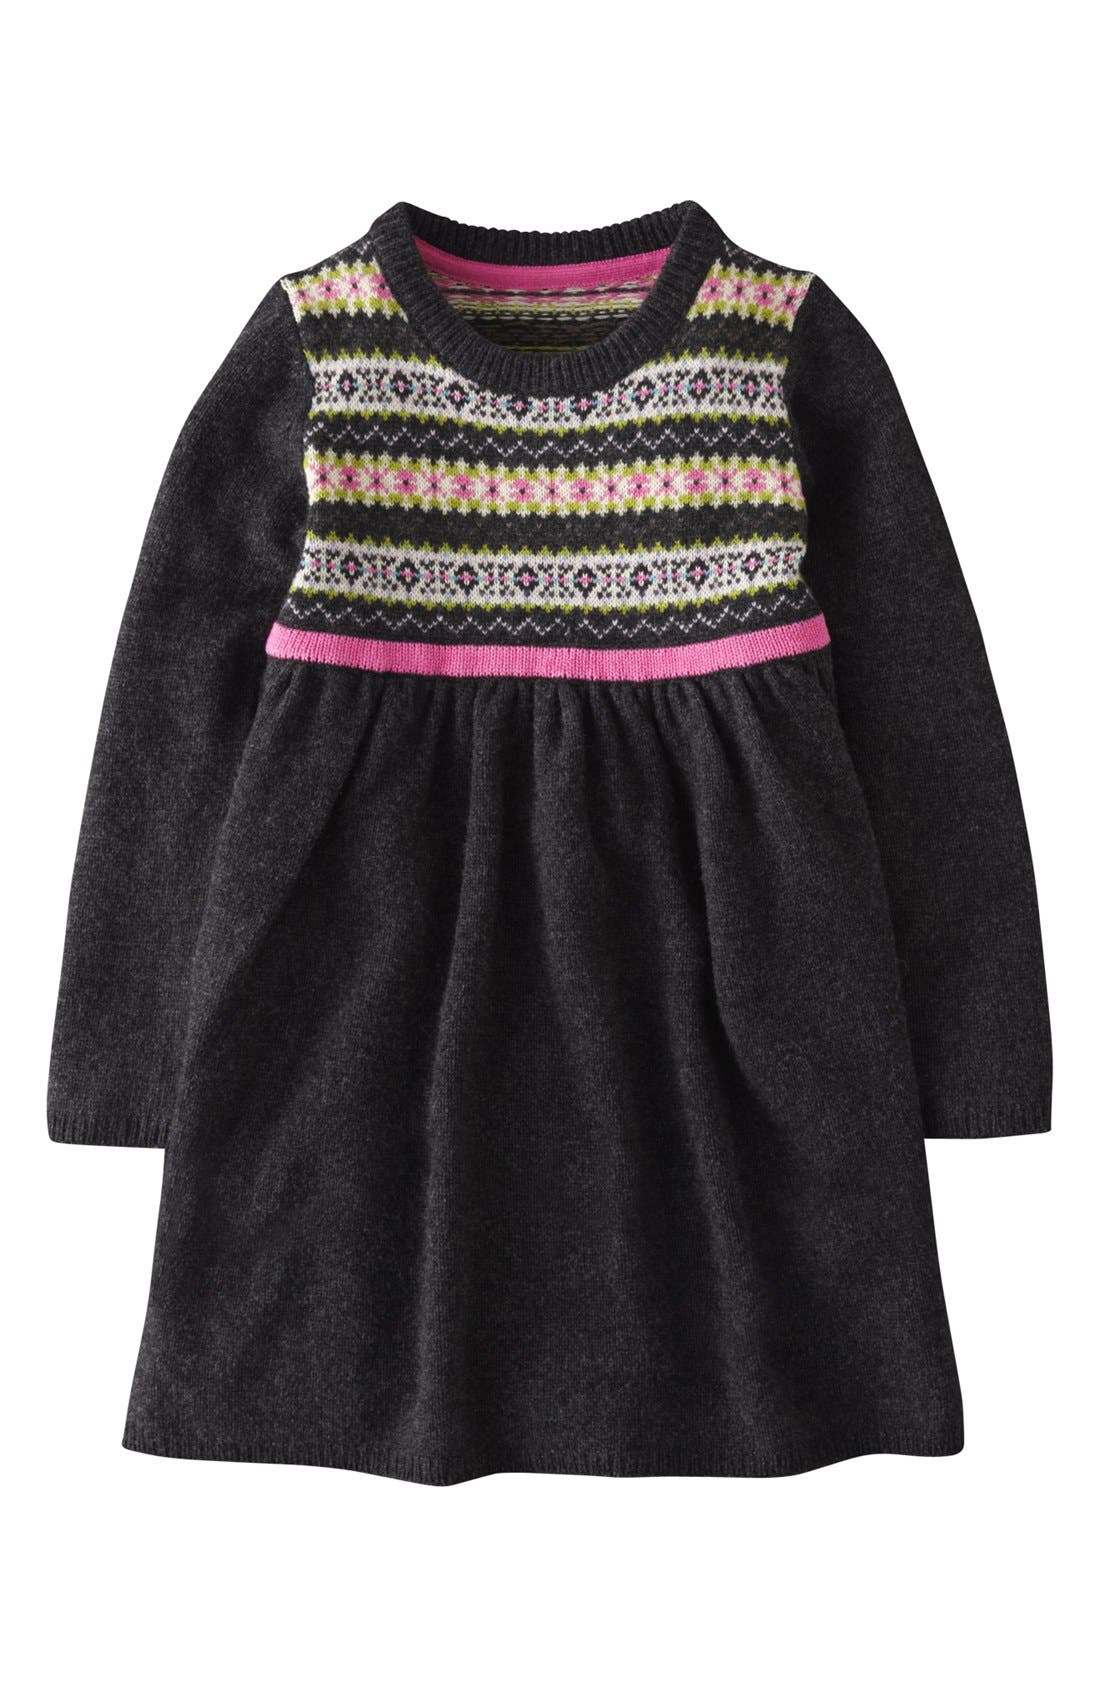 Alternate Image 1 Selected - Mini Boden Fair Isle Knit Dress (Toddler Girls)